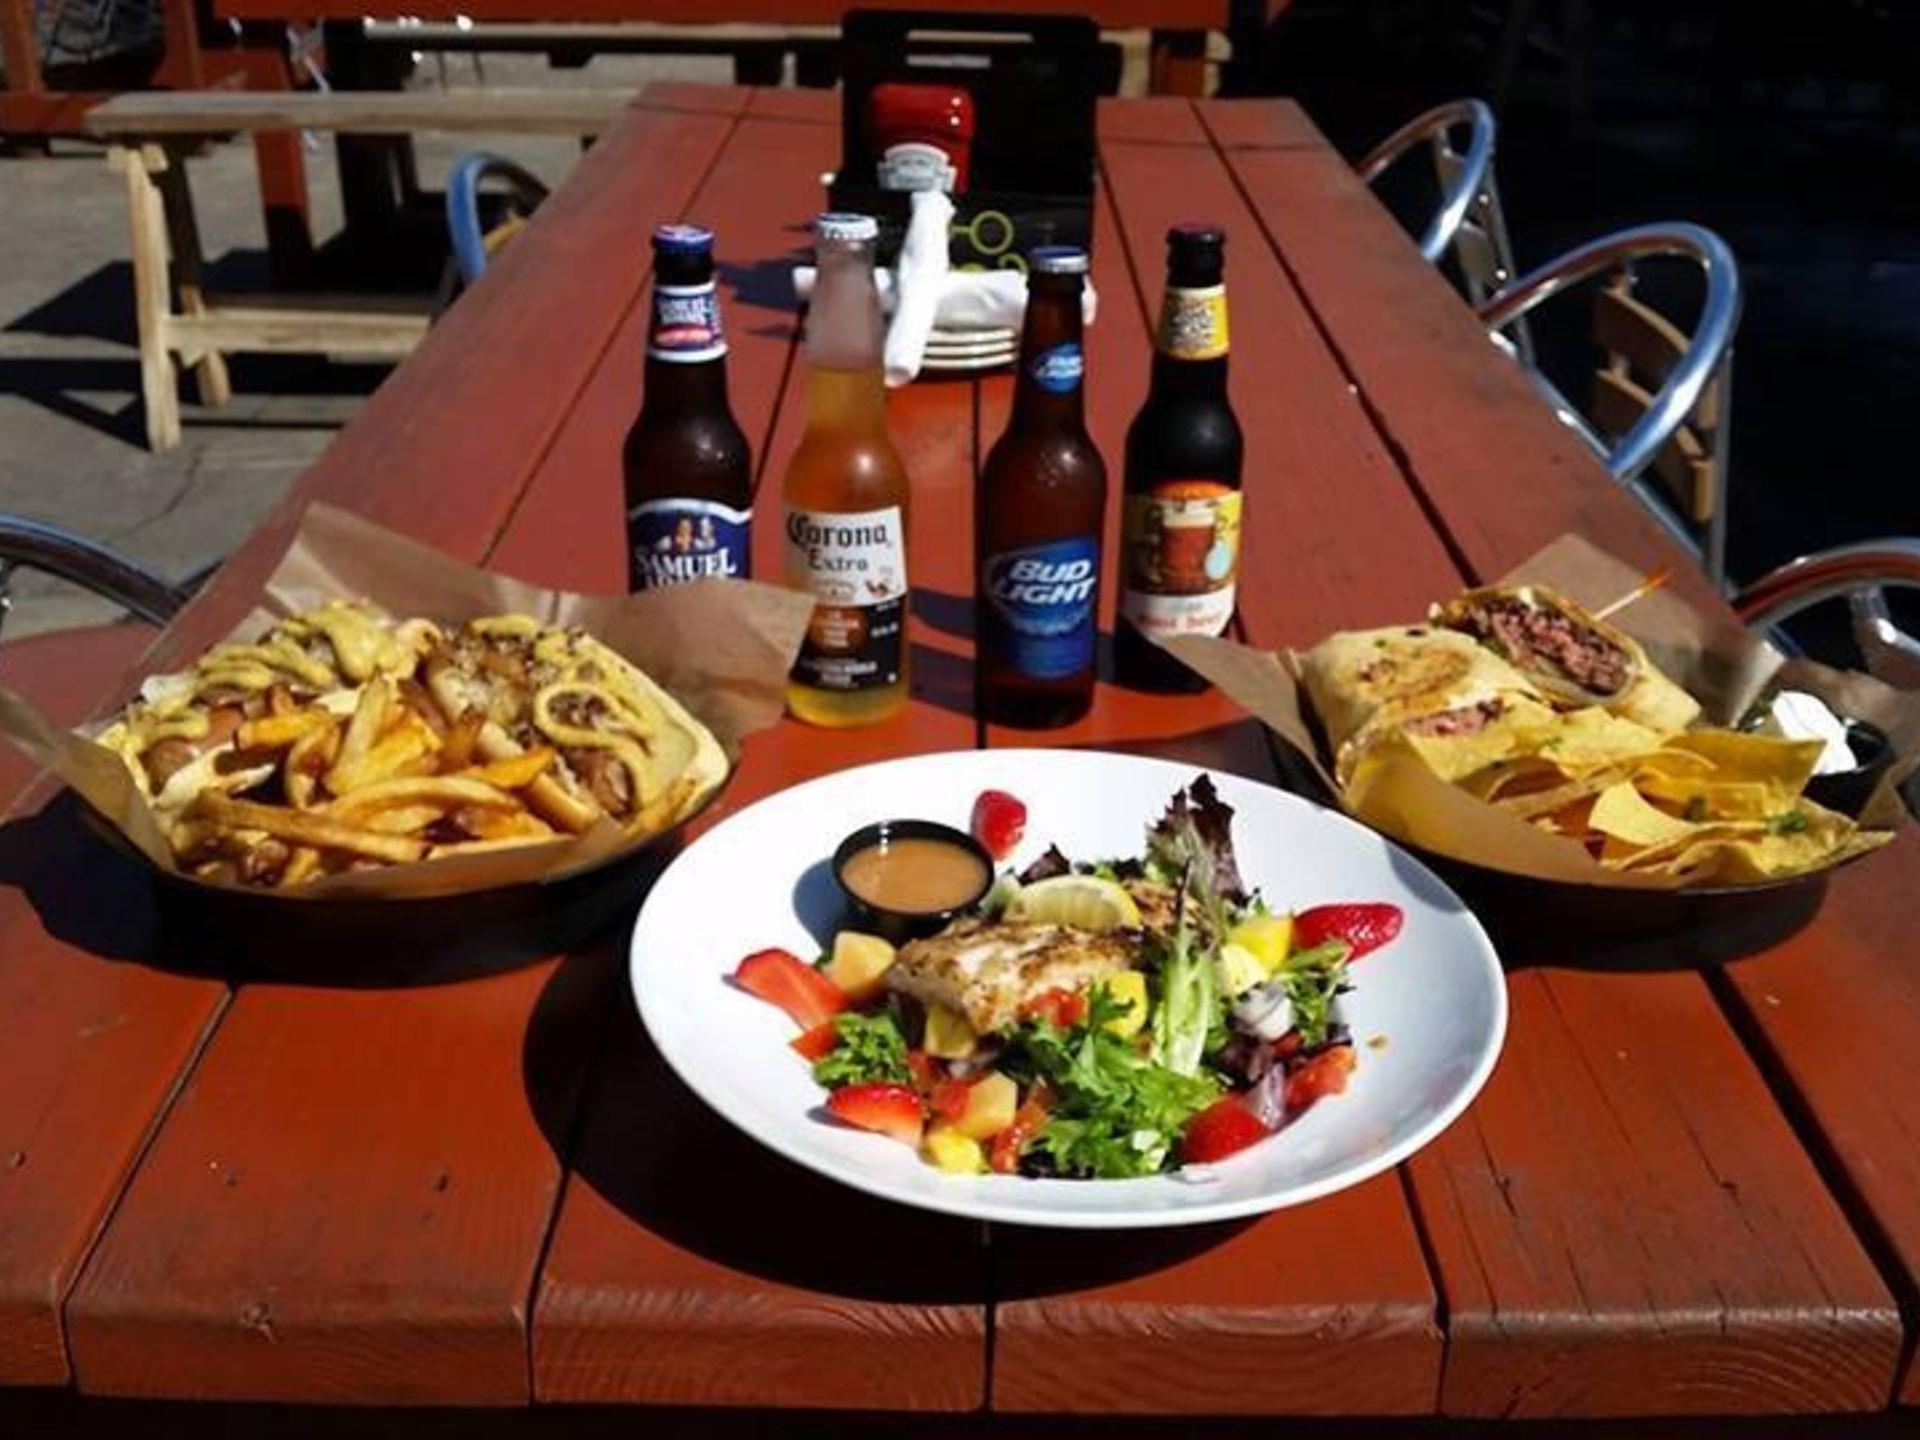 Grilled chicken salad, basket of loaded fries with cheese and bacon and nachos on a wooden table with an assortment of bottled beers